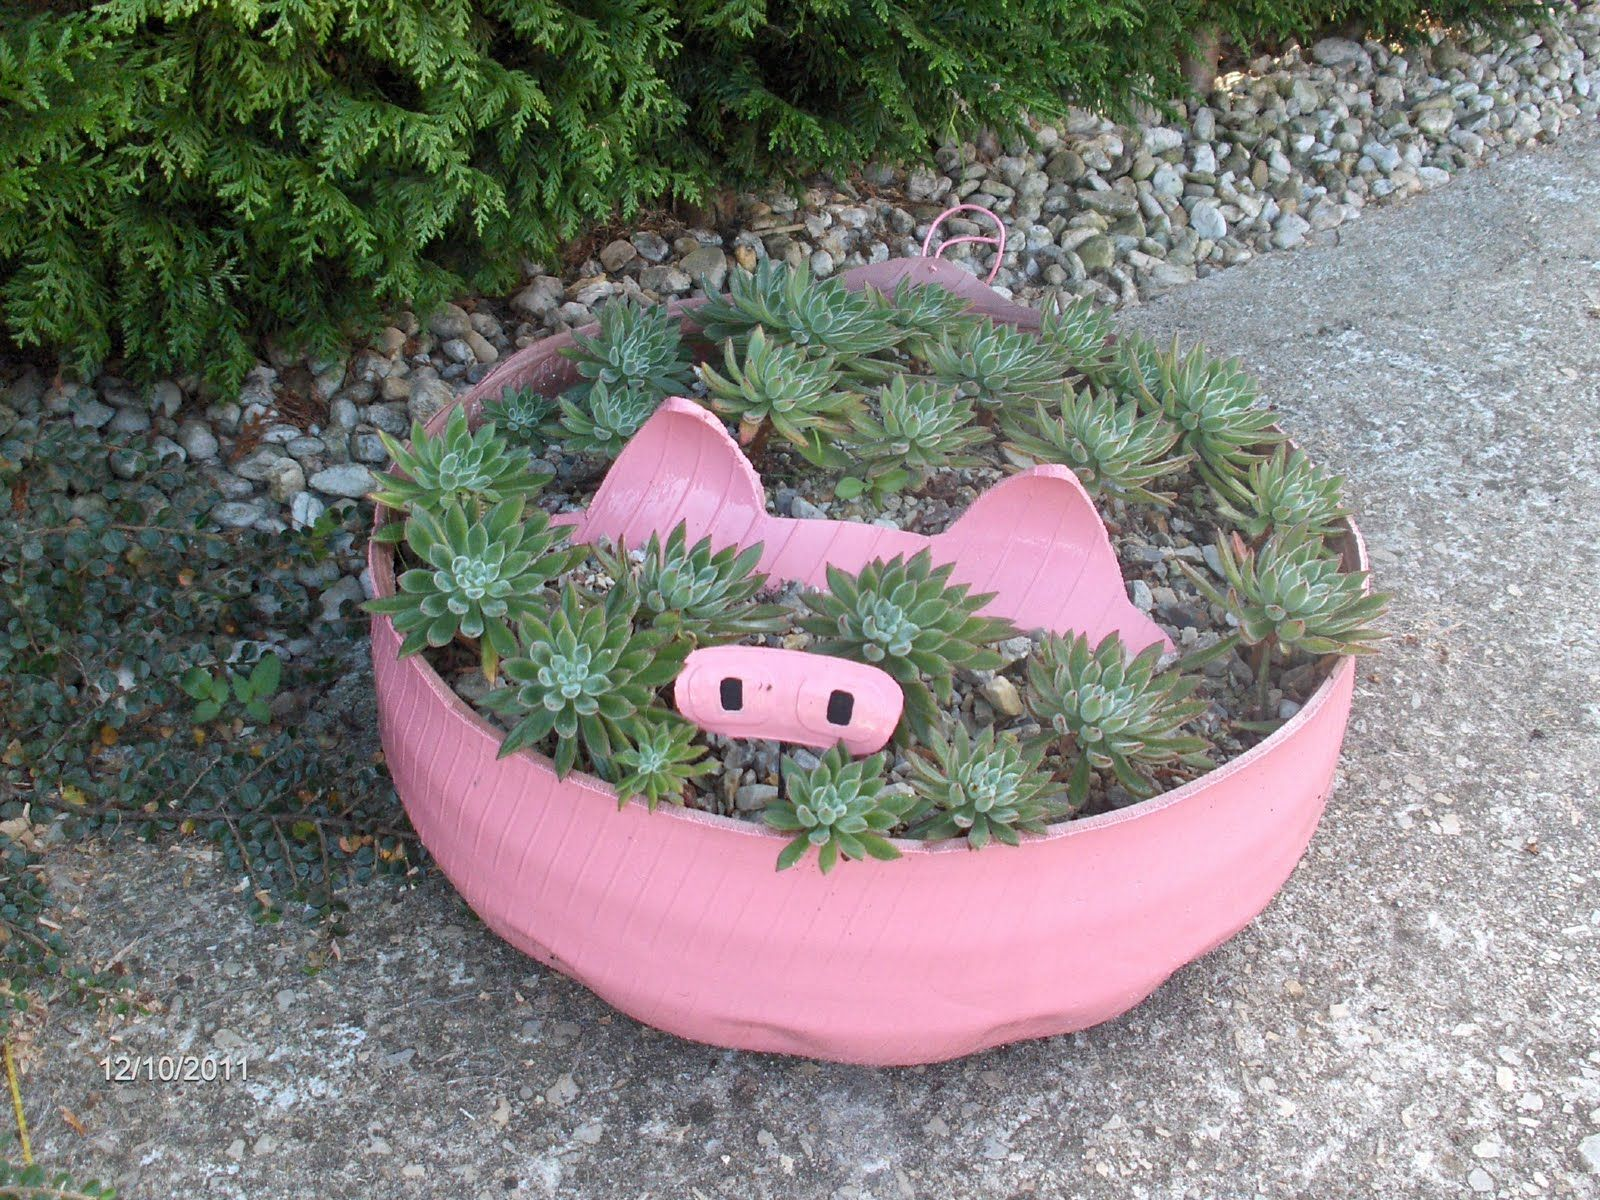 Garden decor with tyres  Pin by Tracey Simpson Booth on PIGGIES  Pinterest  Tired